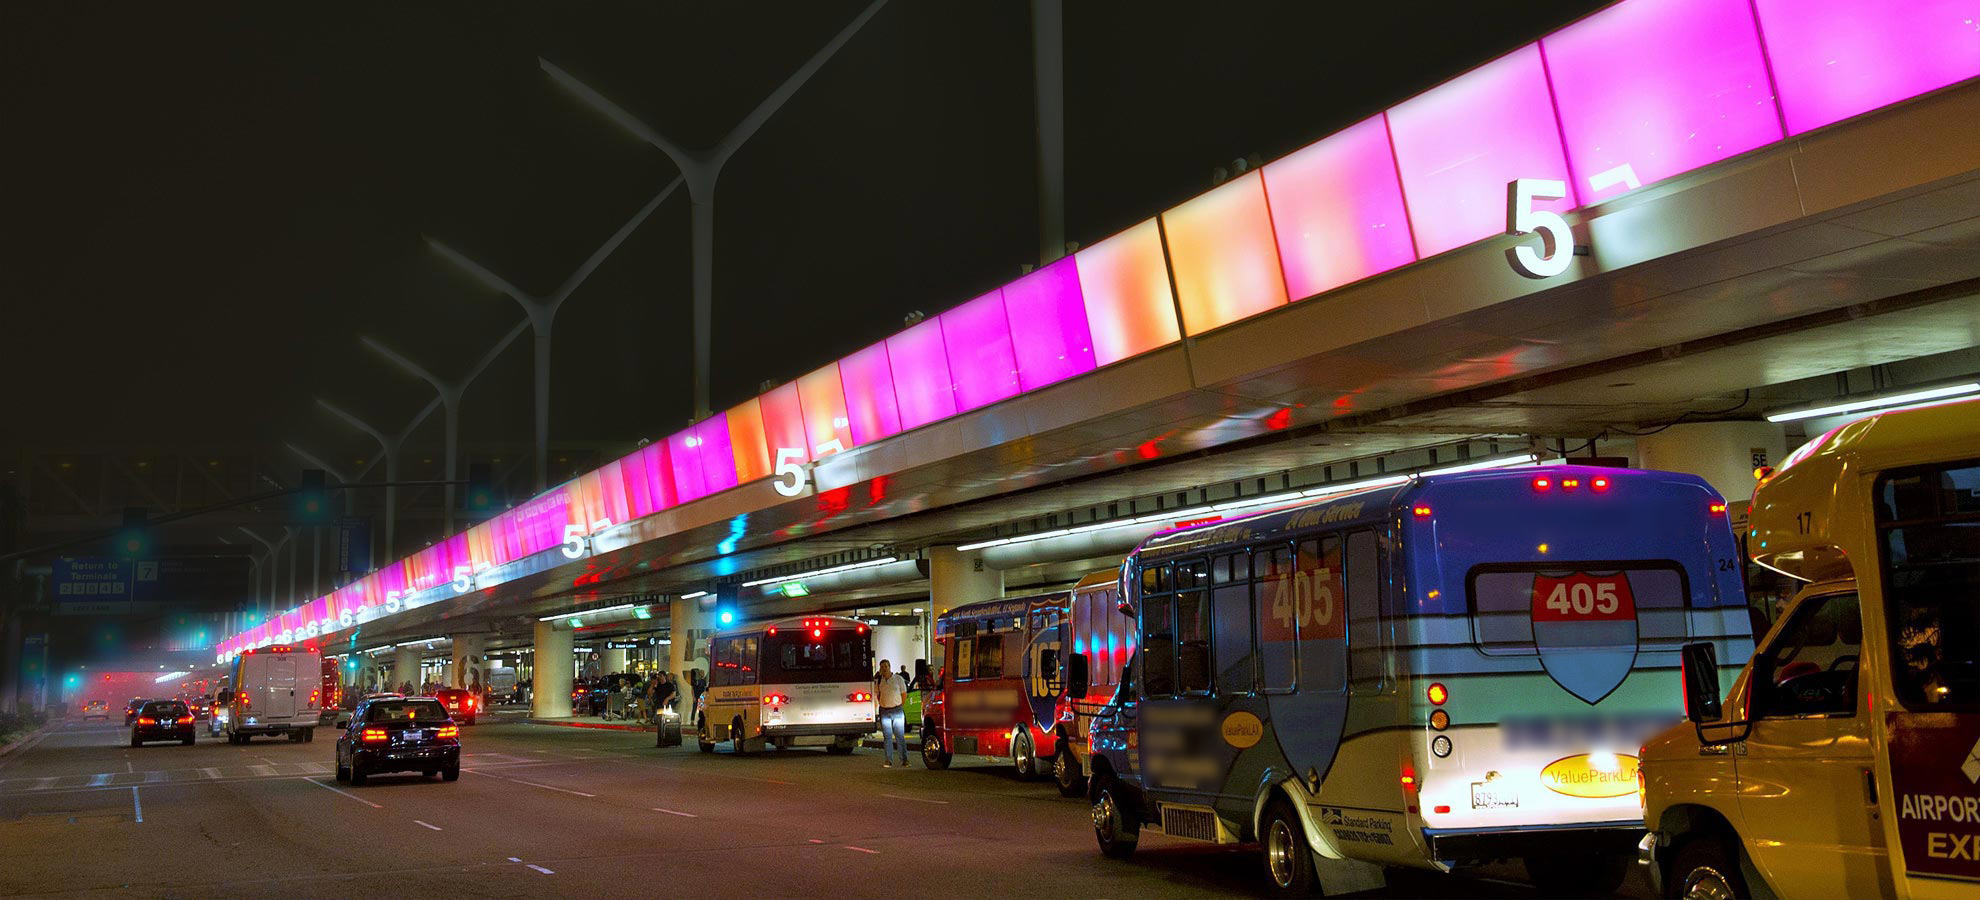 Traffic background image showing terminal 5 at night